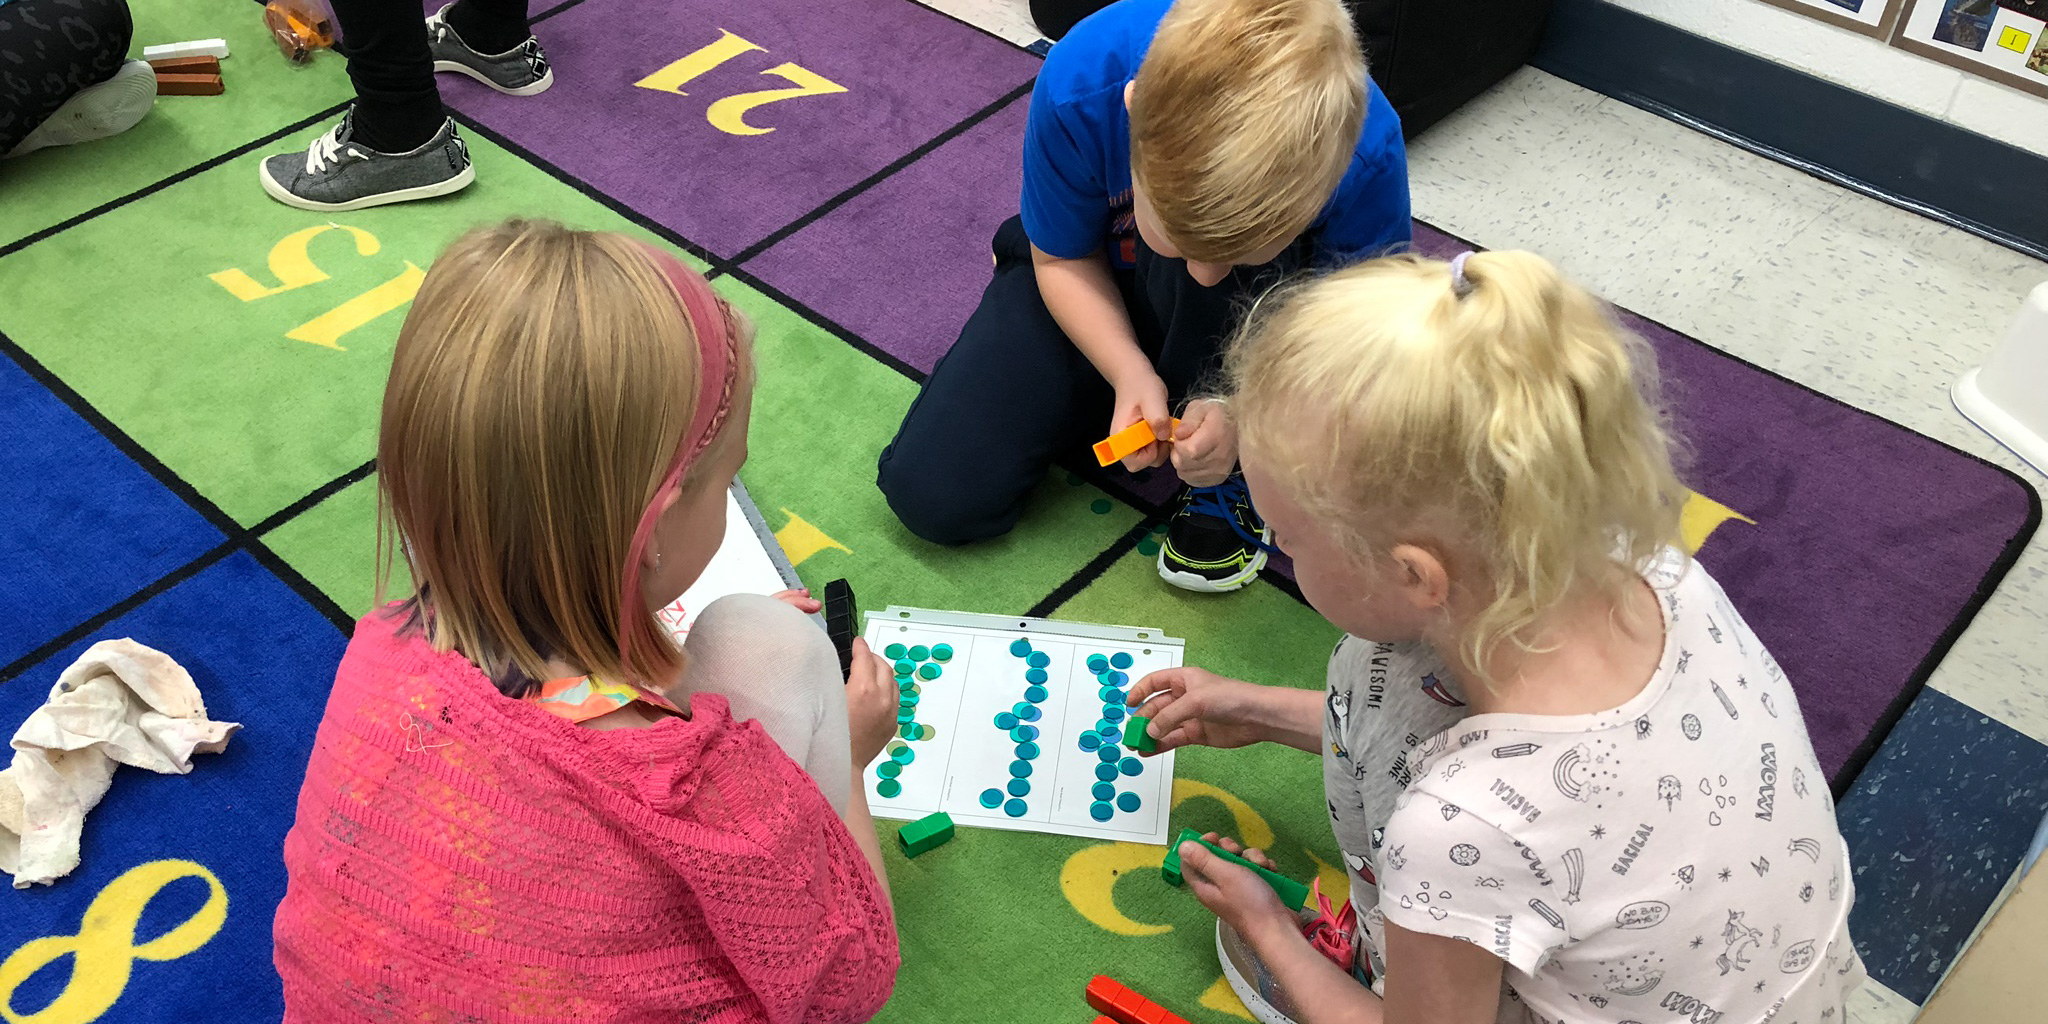 Grade 3 students learn some math